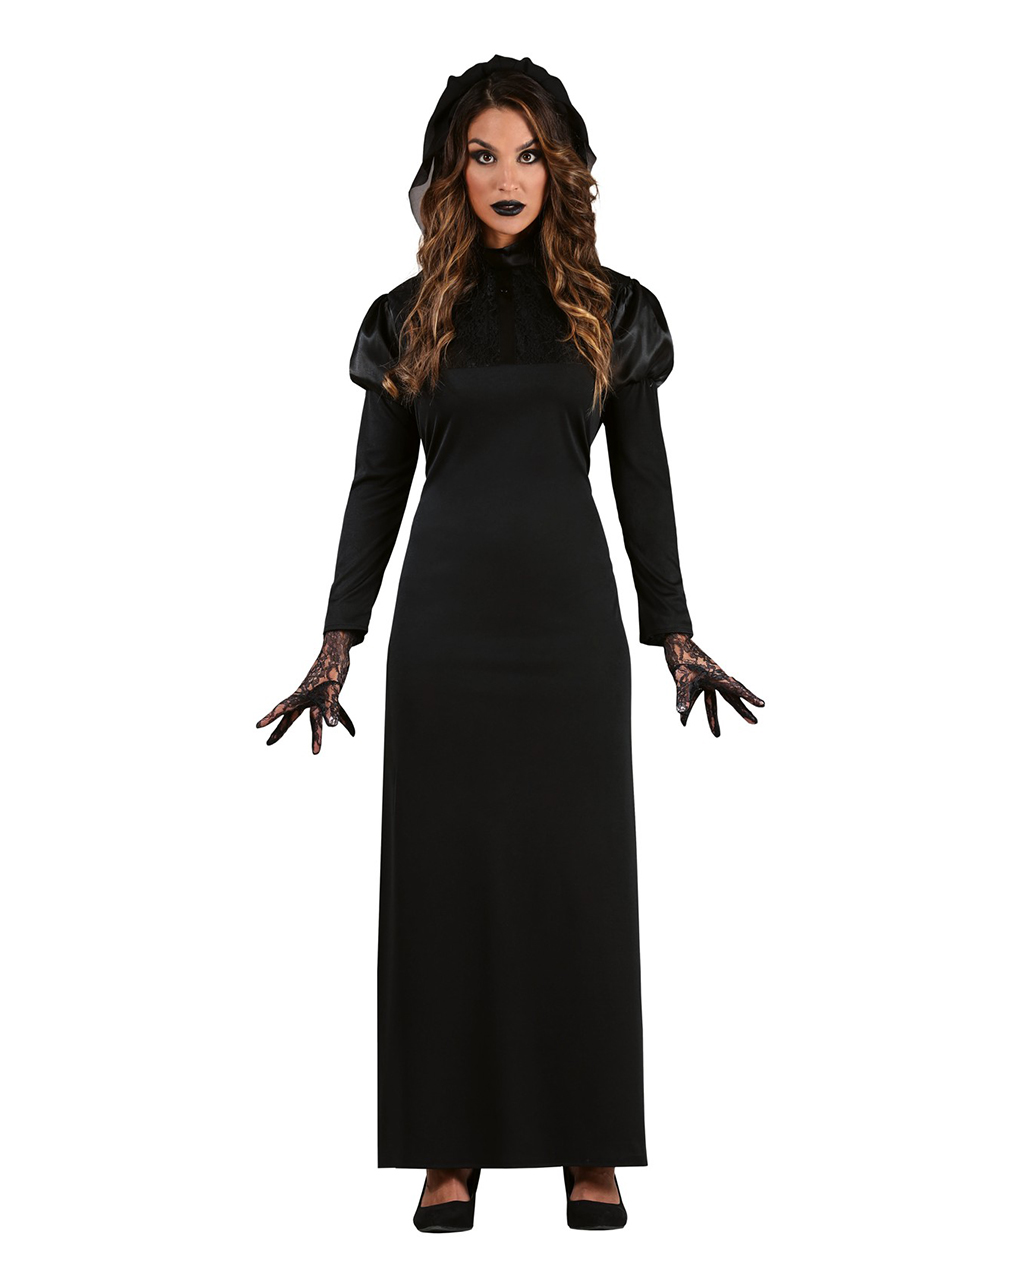 Elegant Widow Costume For Adults